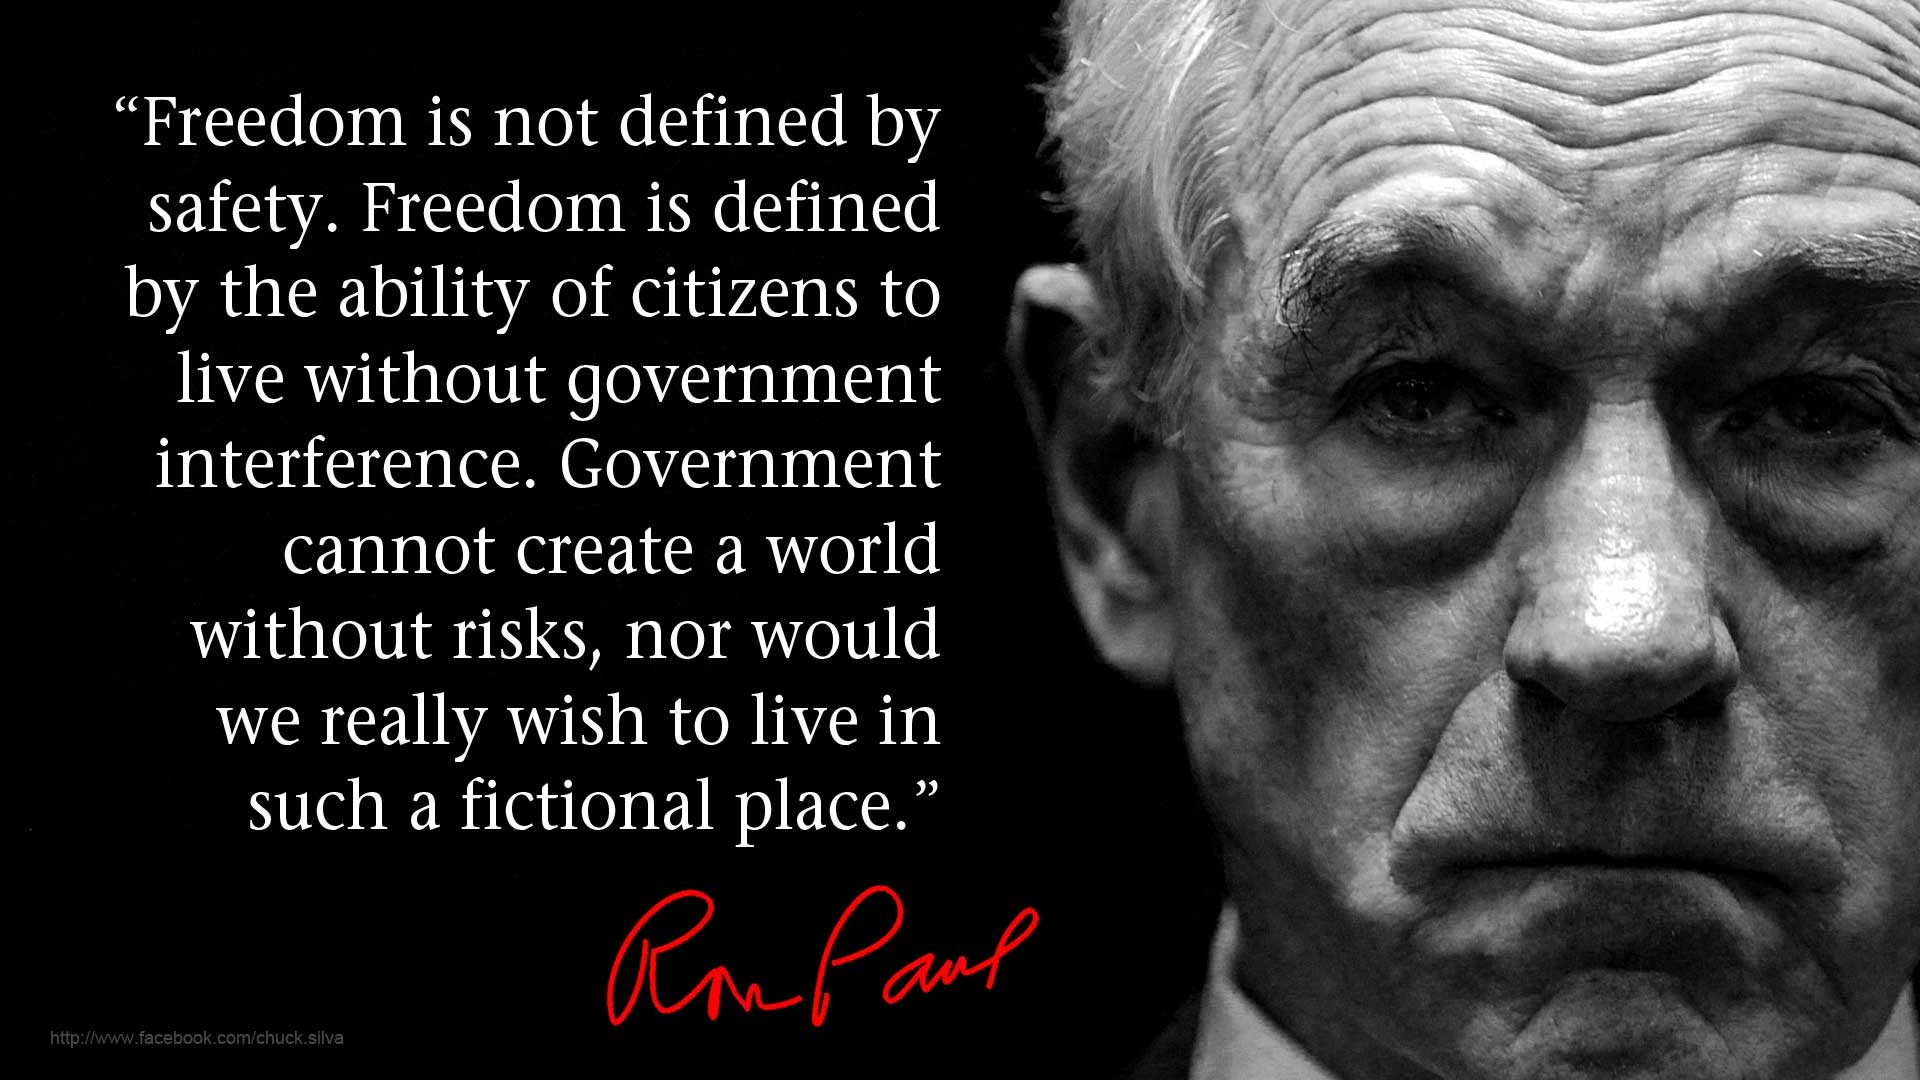 safety vs freedom So if somehow freedom and safety do clash, it is the free choice of each person to resolve that clash for himself  we are not giving up liberty for security.